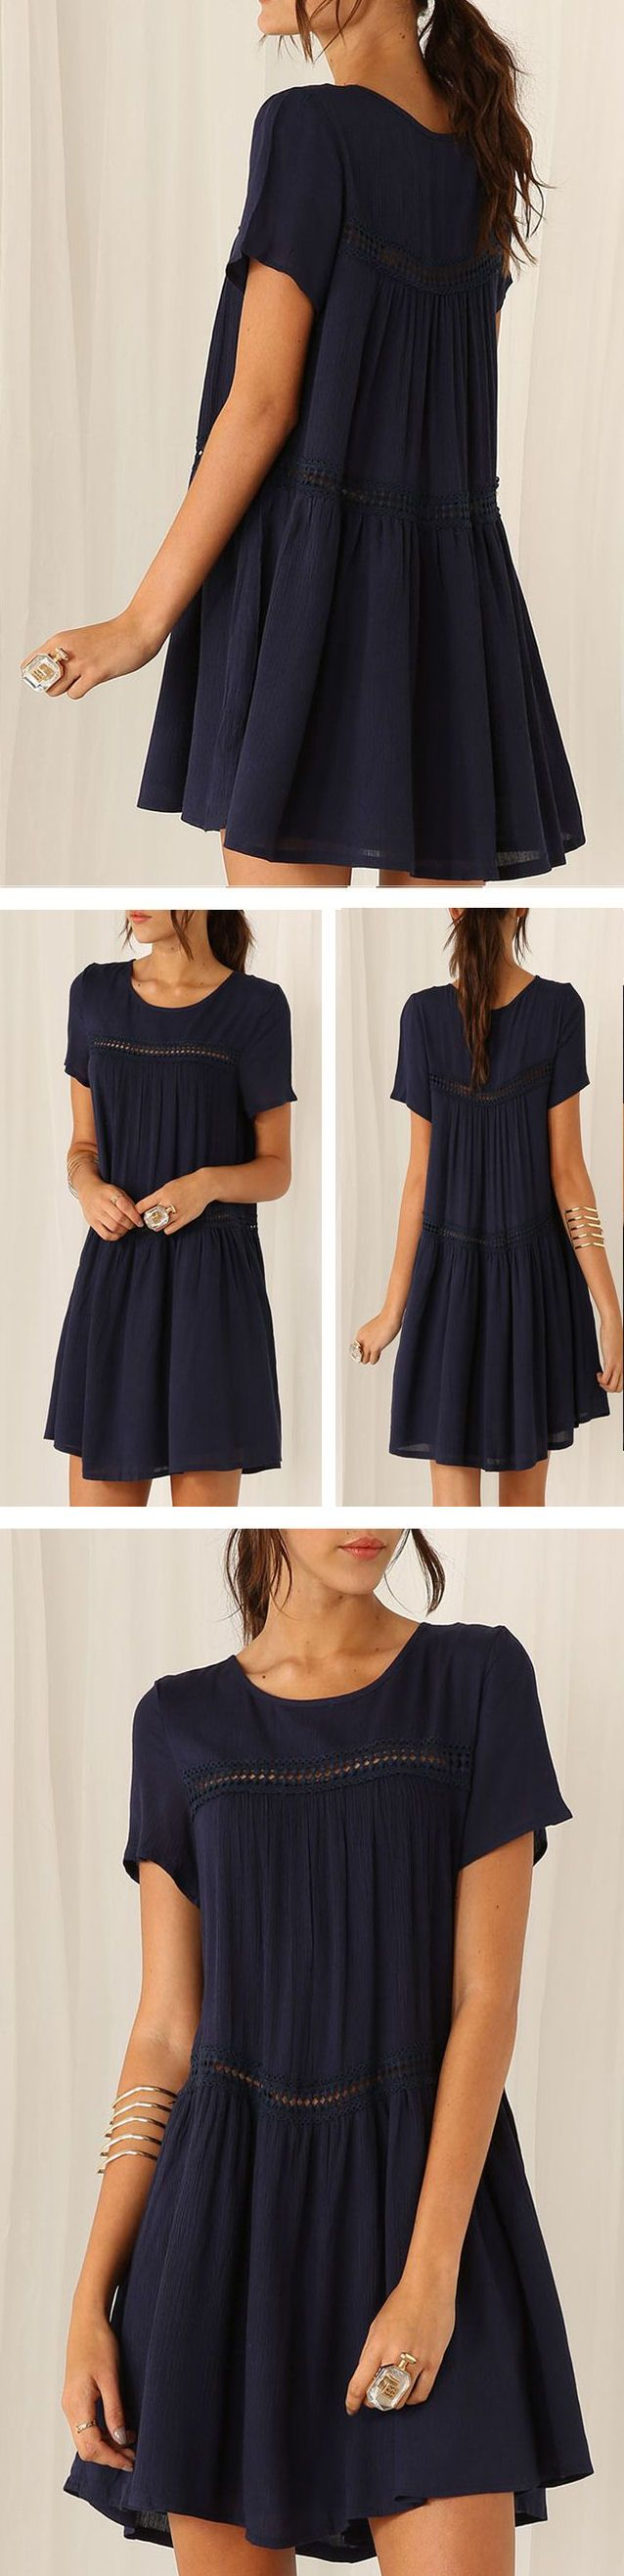 Navy Short Sleeve Shift Dress ❤︎